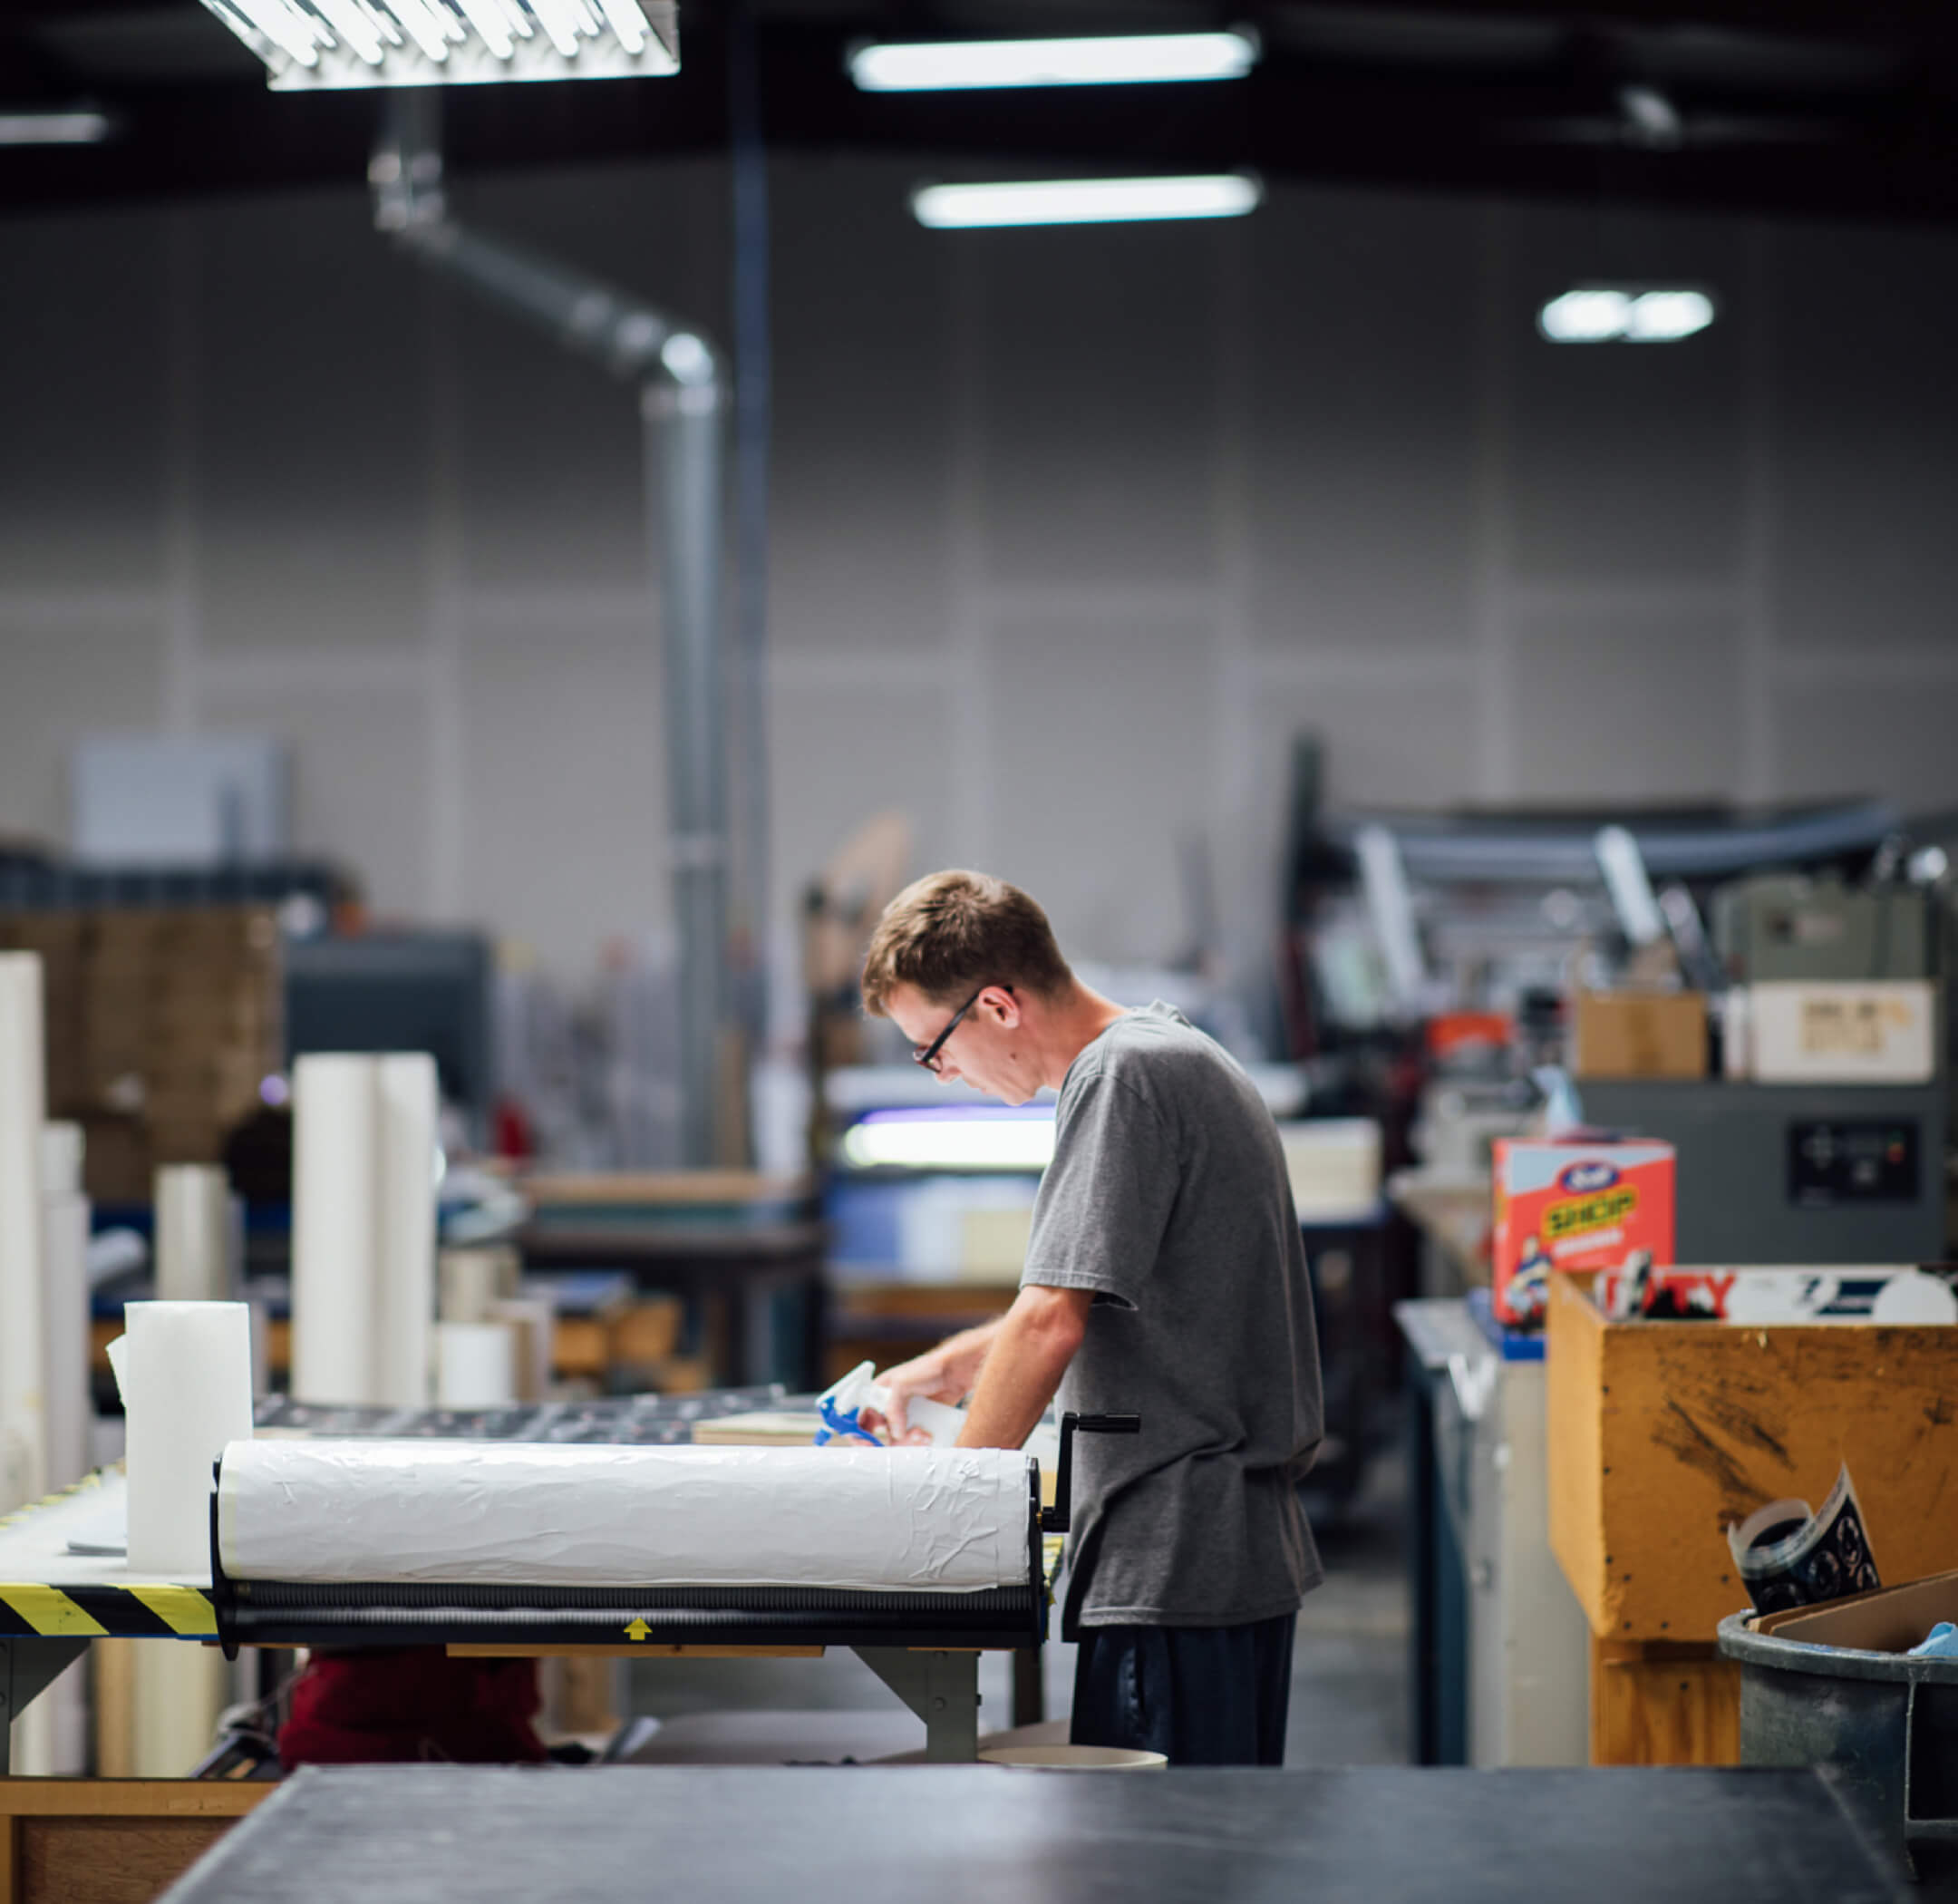 Long shot of a man working in the Go Decals facility.